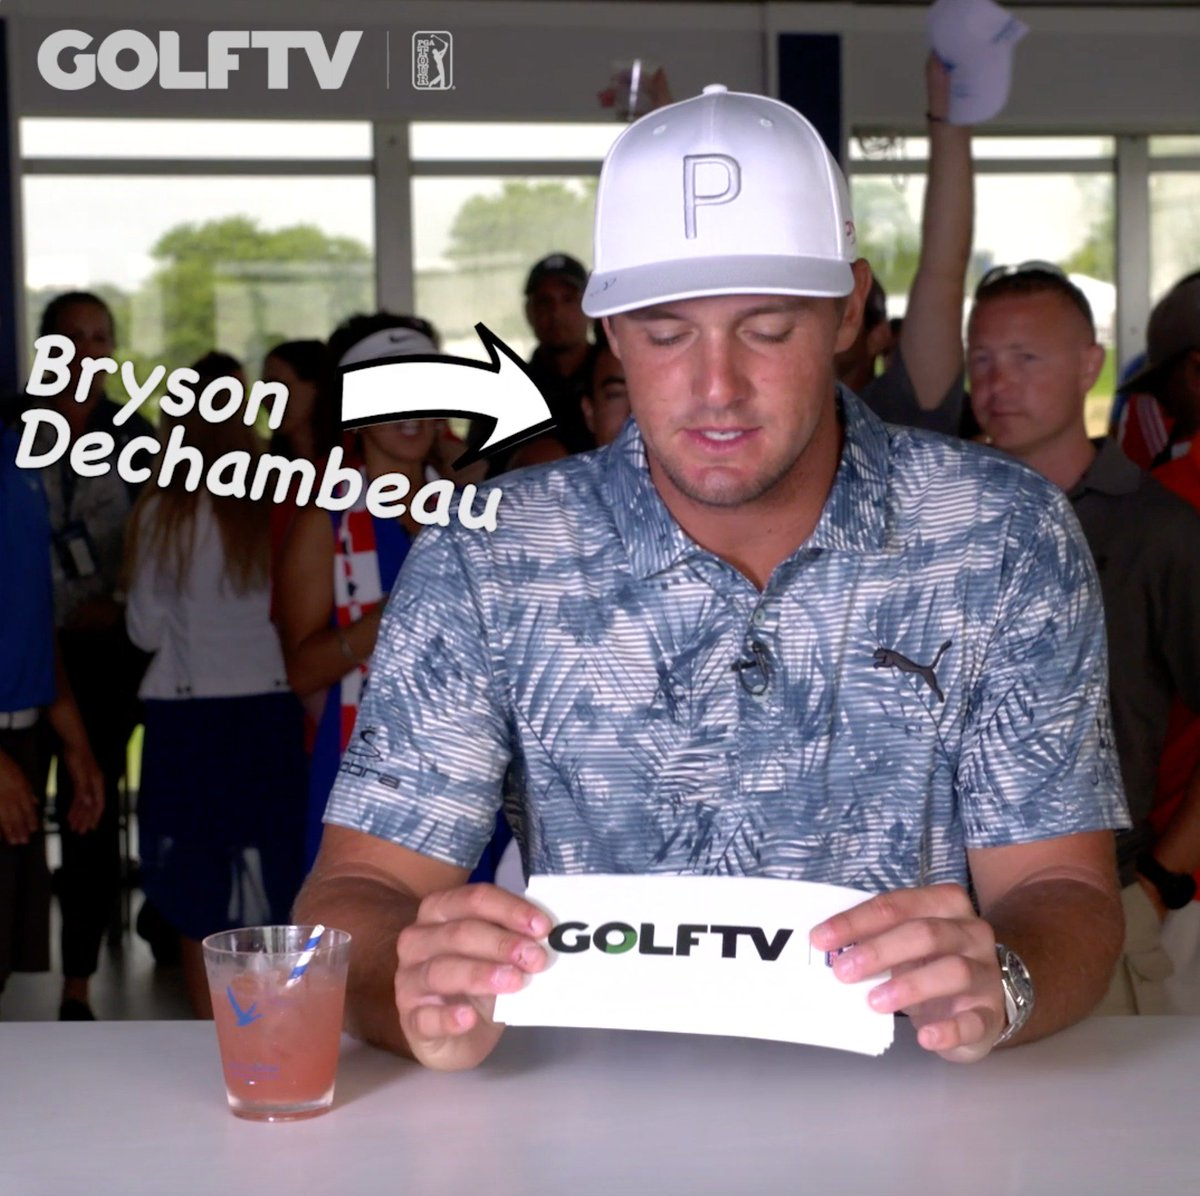 From phobias to superstitions and the last thing he bought online, get to know more about Bryson DeChambeau.  https://t.co/sHdljMKjwp